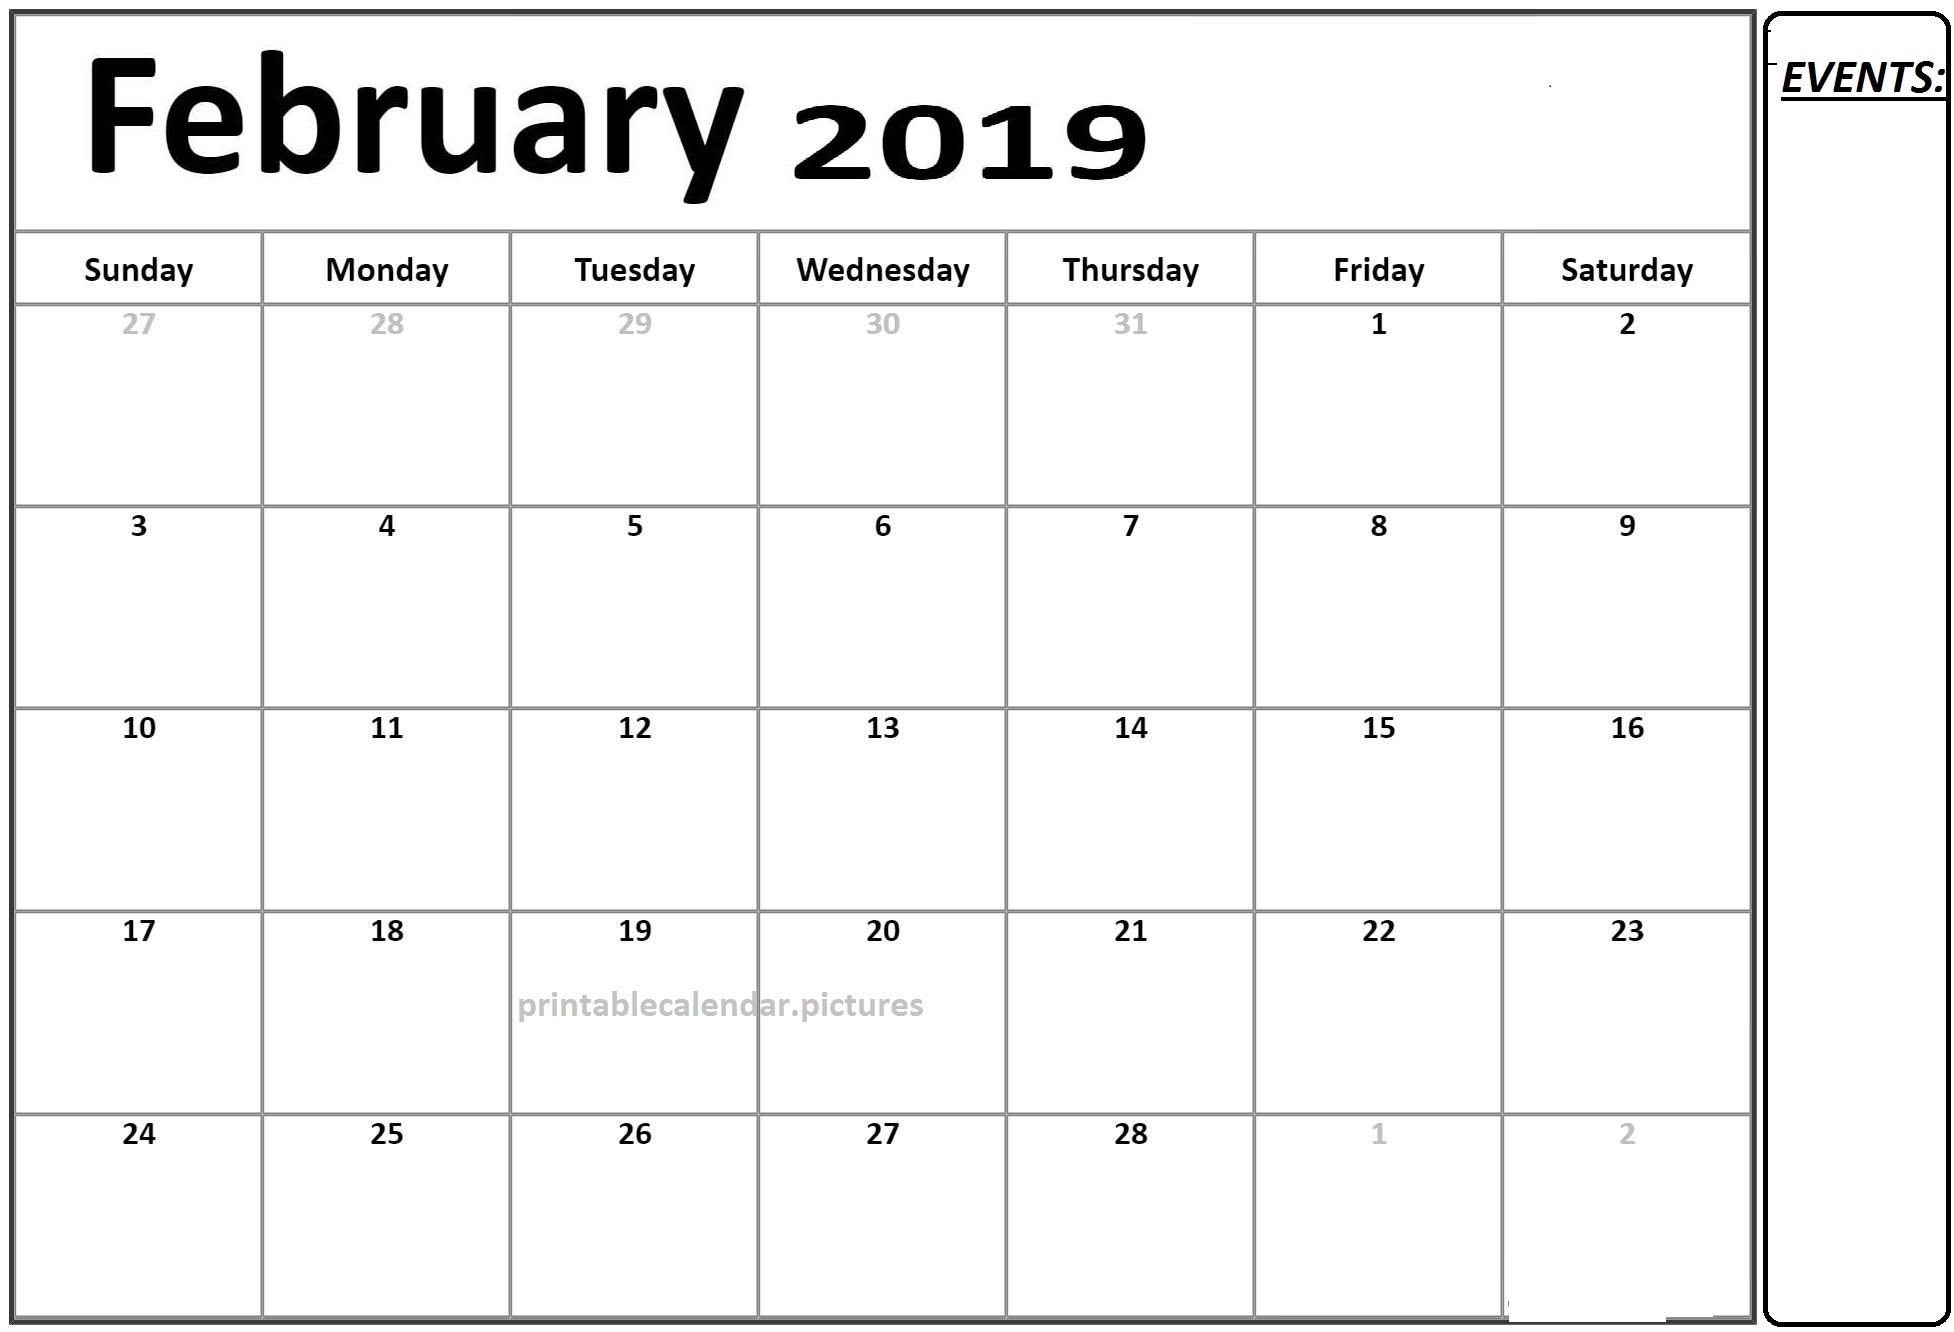 February Calendar 2019 Pdf Free Calendar 2019 February Printable Template PDF | Calendar of